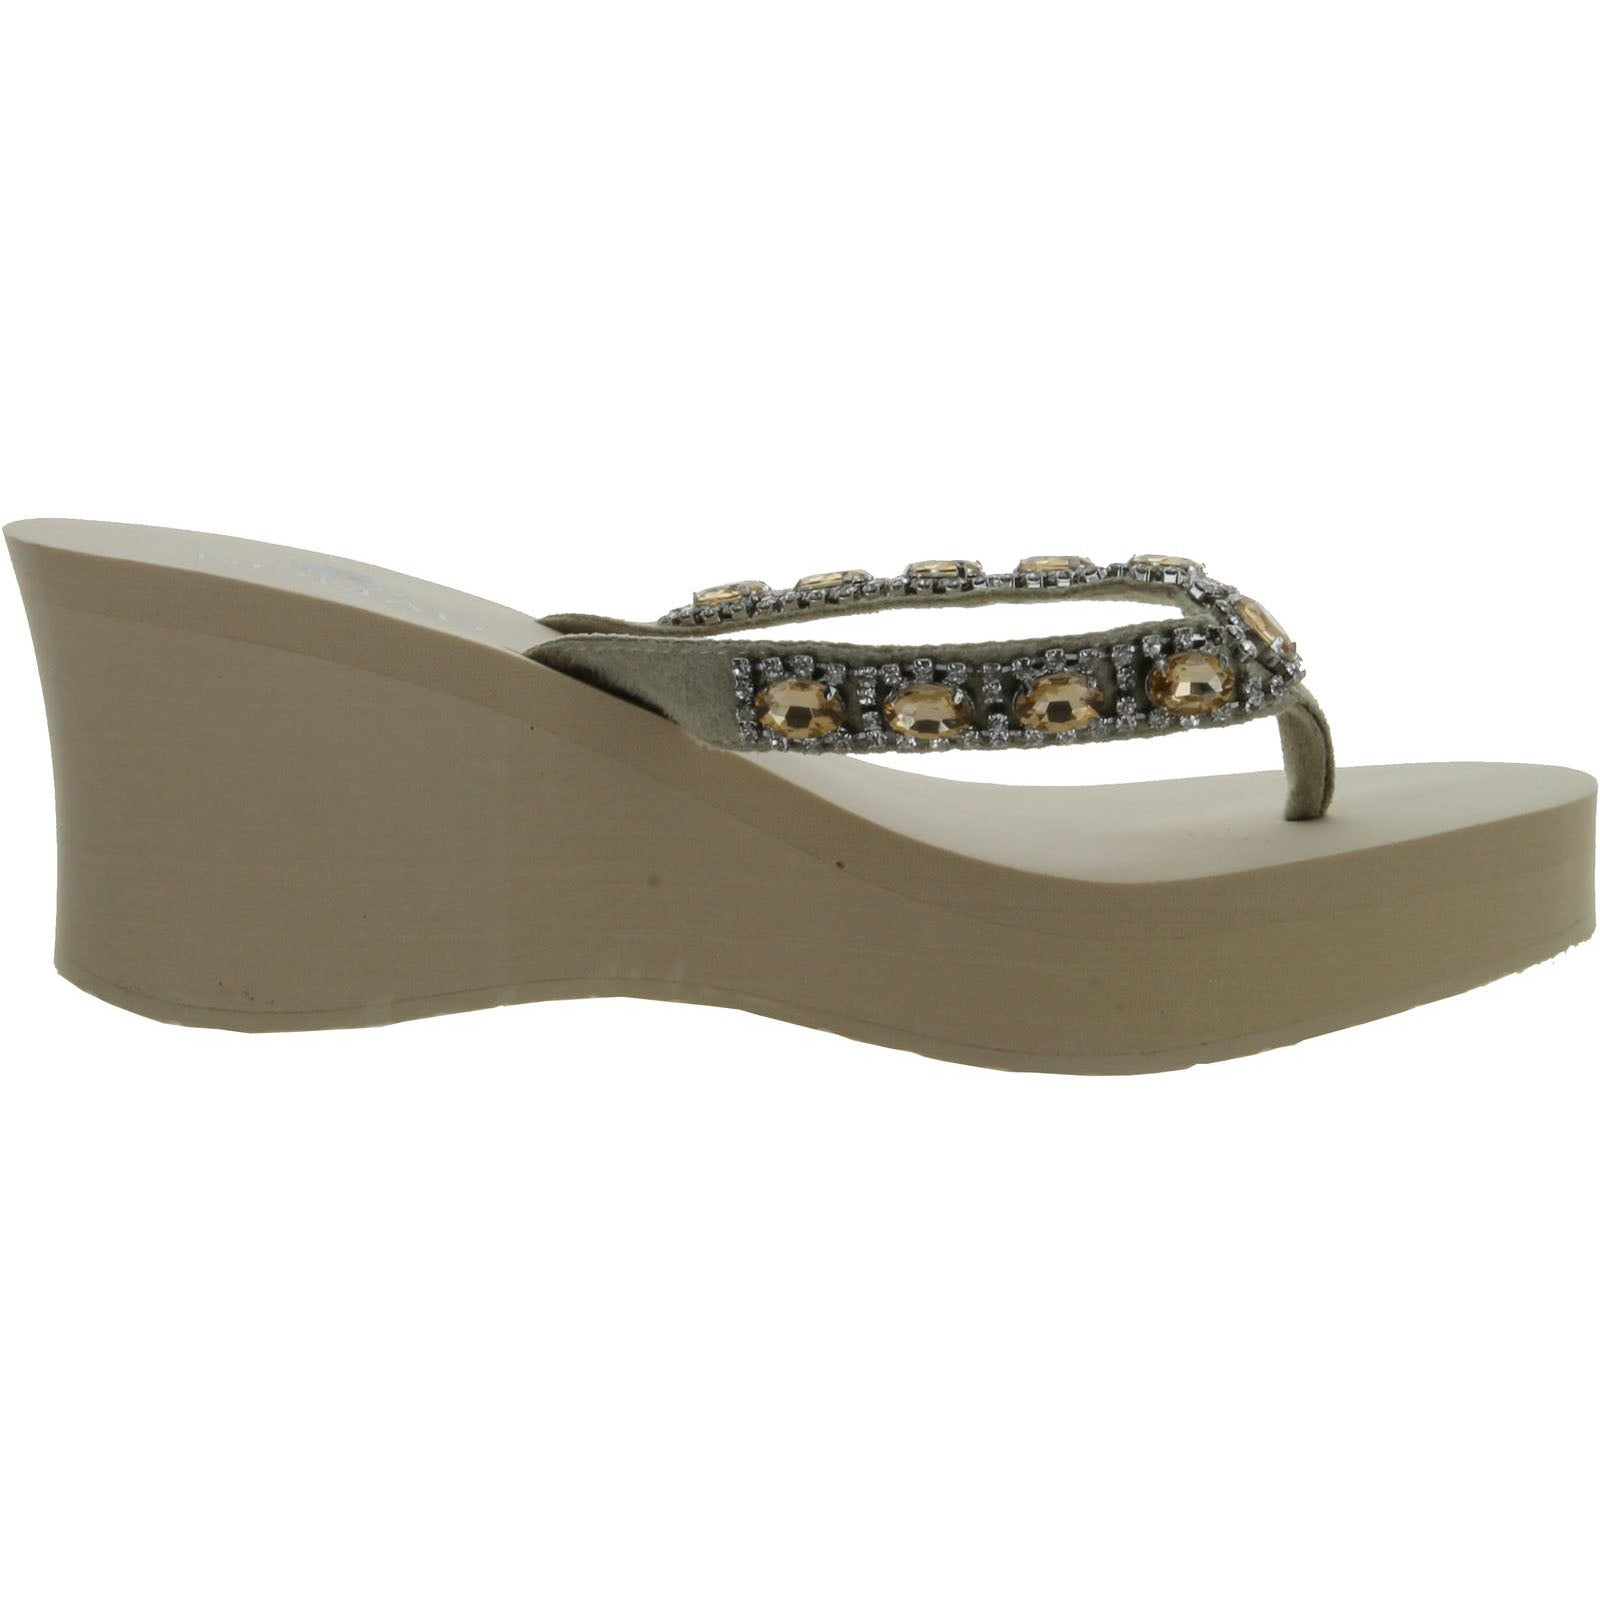 136275932631 Shop Nomad Women s Gem Wedge Sandal - Beige - 10 b(m) us - Free Shipping On  Orders Over  45 - Overstock - 14312229